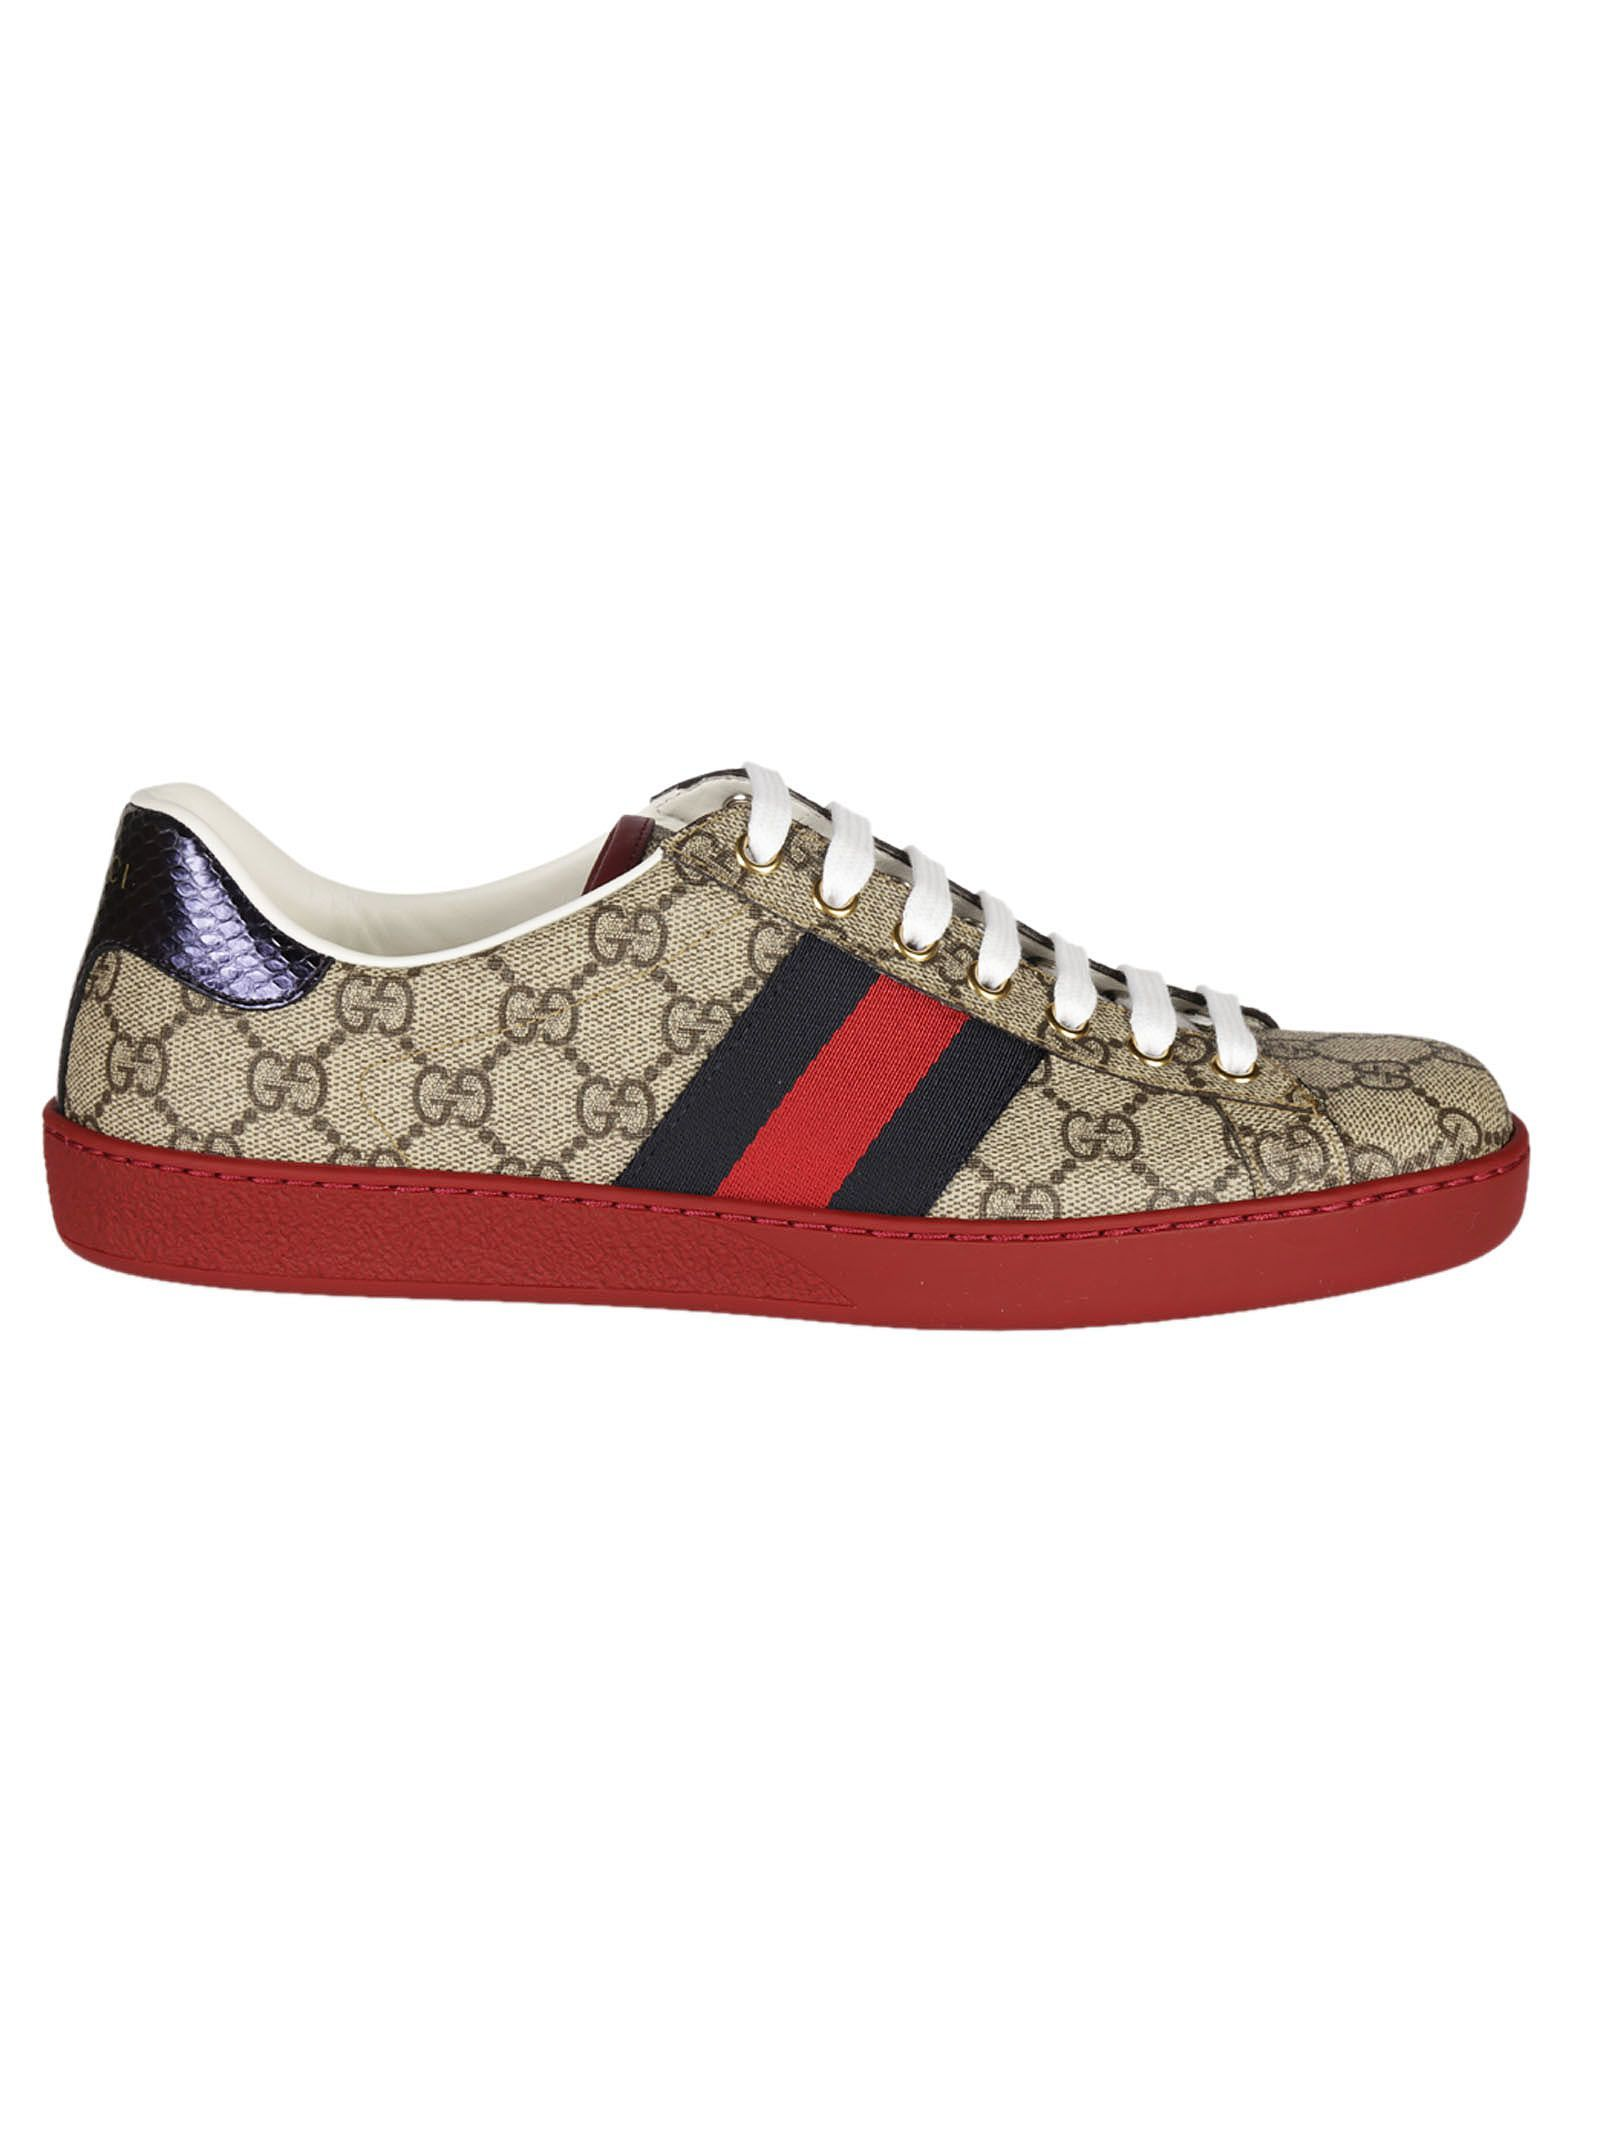 8e2329c6d45 GUCCI ACE GG SUPREME SNEAKERS.  gucci  shoes